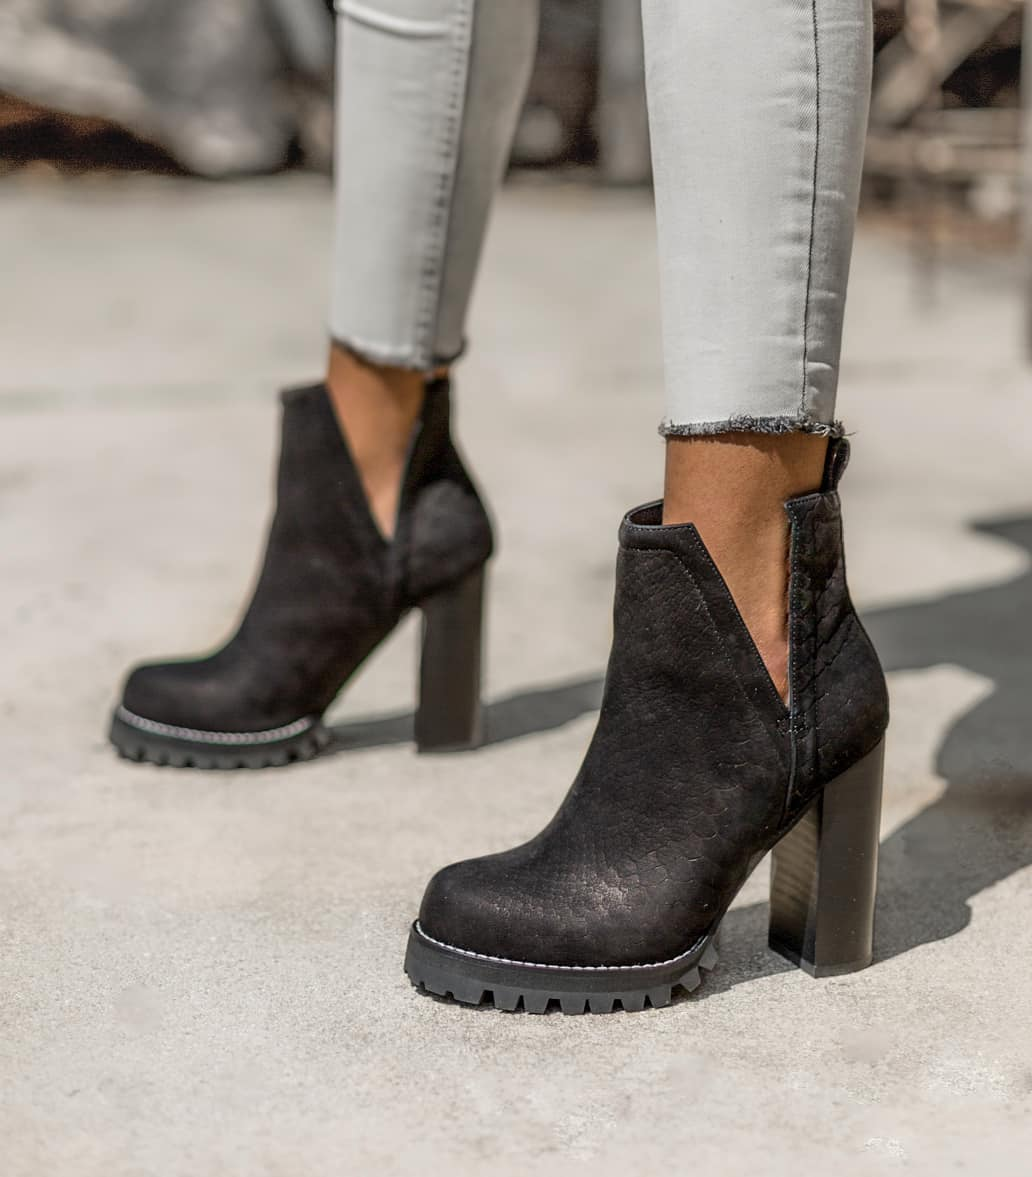 Bewitching black Ankle Boots Must Have Footwears For Girls